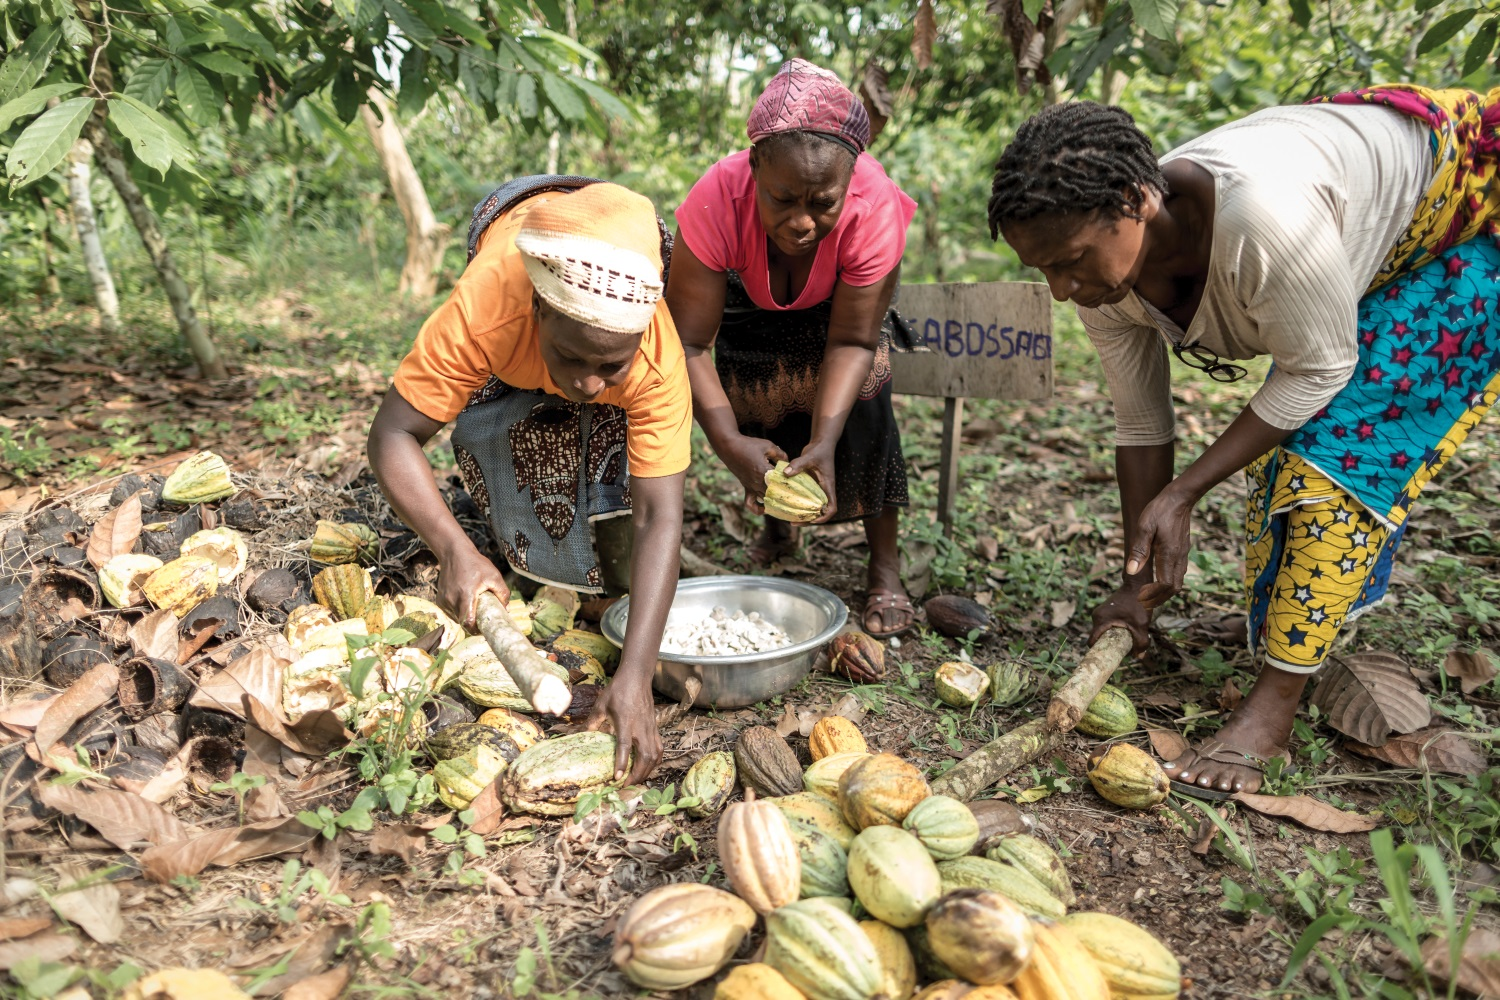 Fairtrade report claims key progress on training West African cocoa farmers